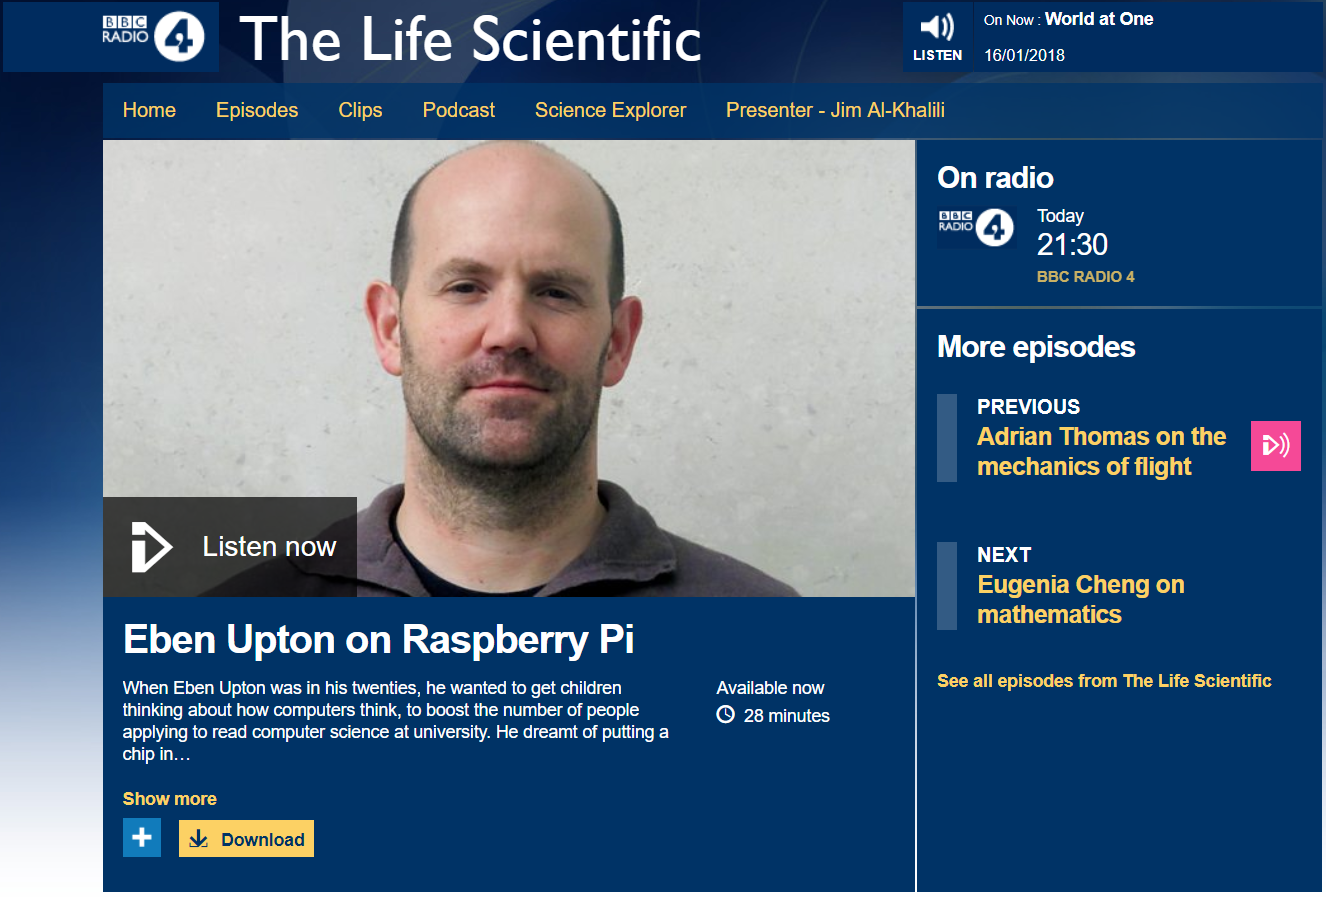 The Life Scientific is a great series - give it a look!